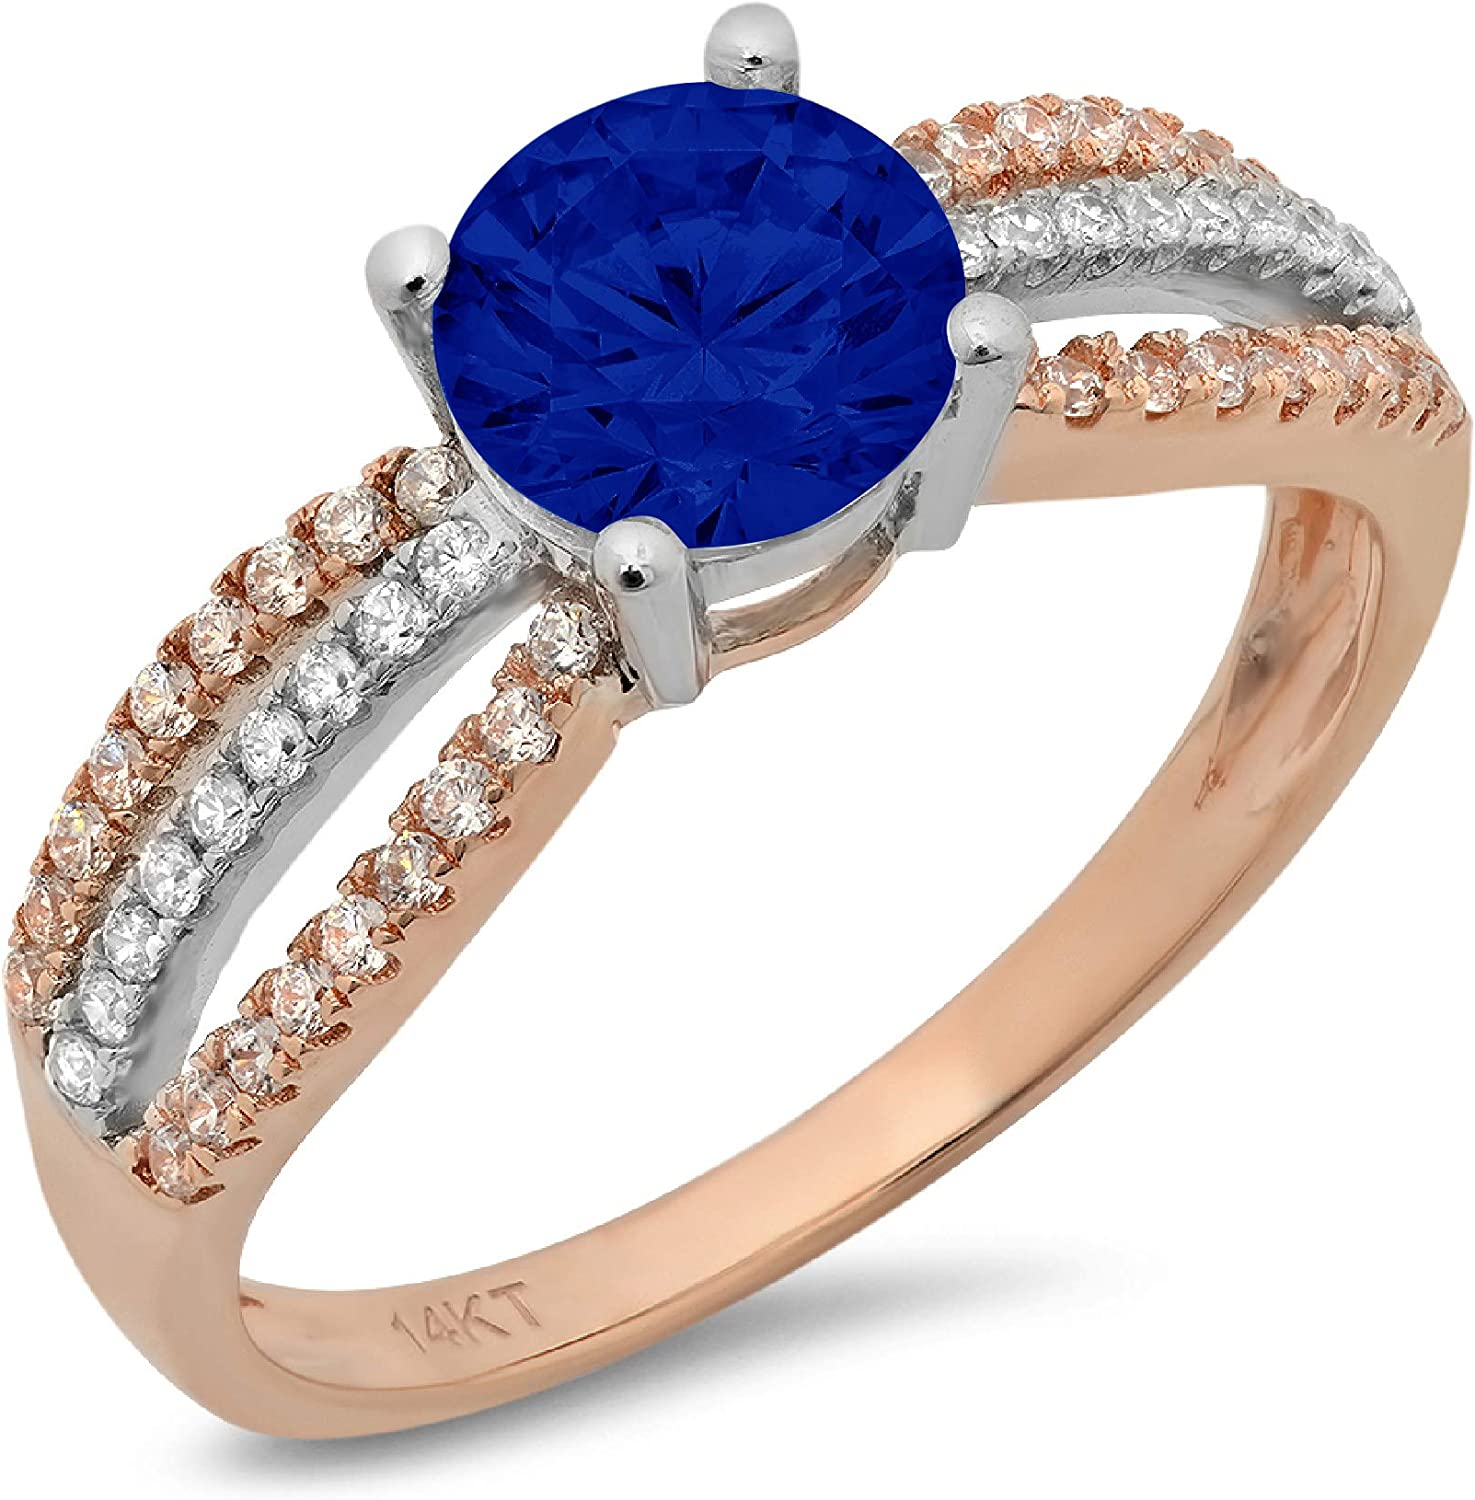 1.19ct Round Cut Solitaire with accent Flawless Ideal Genuine Cubic Zirconia Blue Sapphire Engagement Promise Statement Anniversary Bridal Wedding with accent Designer Ring Solid 14k 2 tone Gold